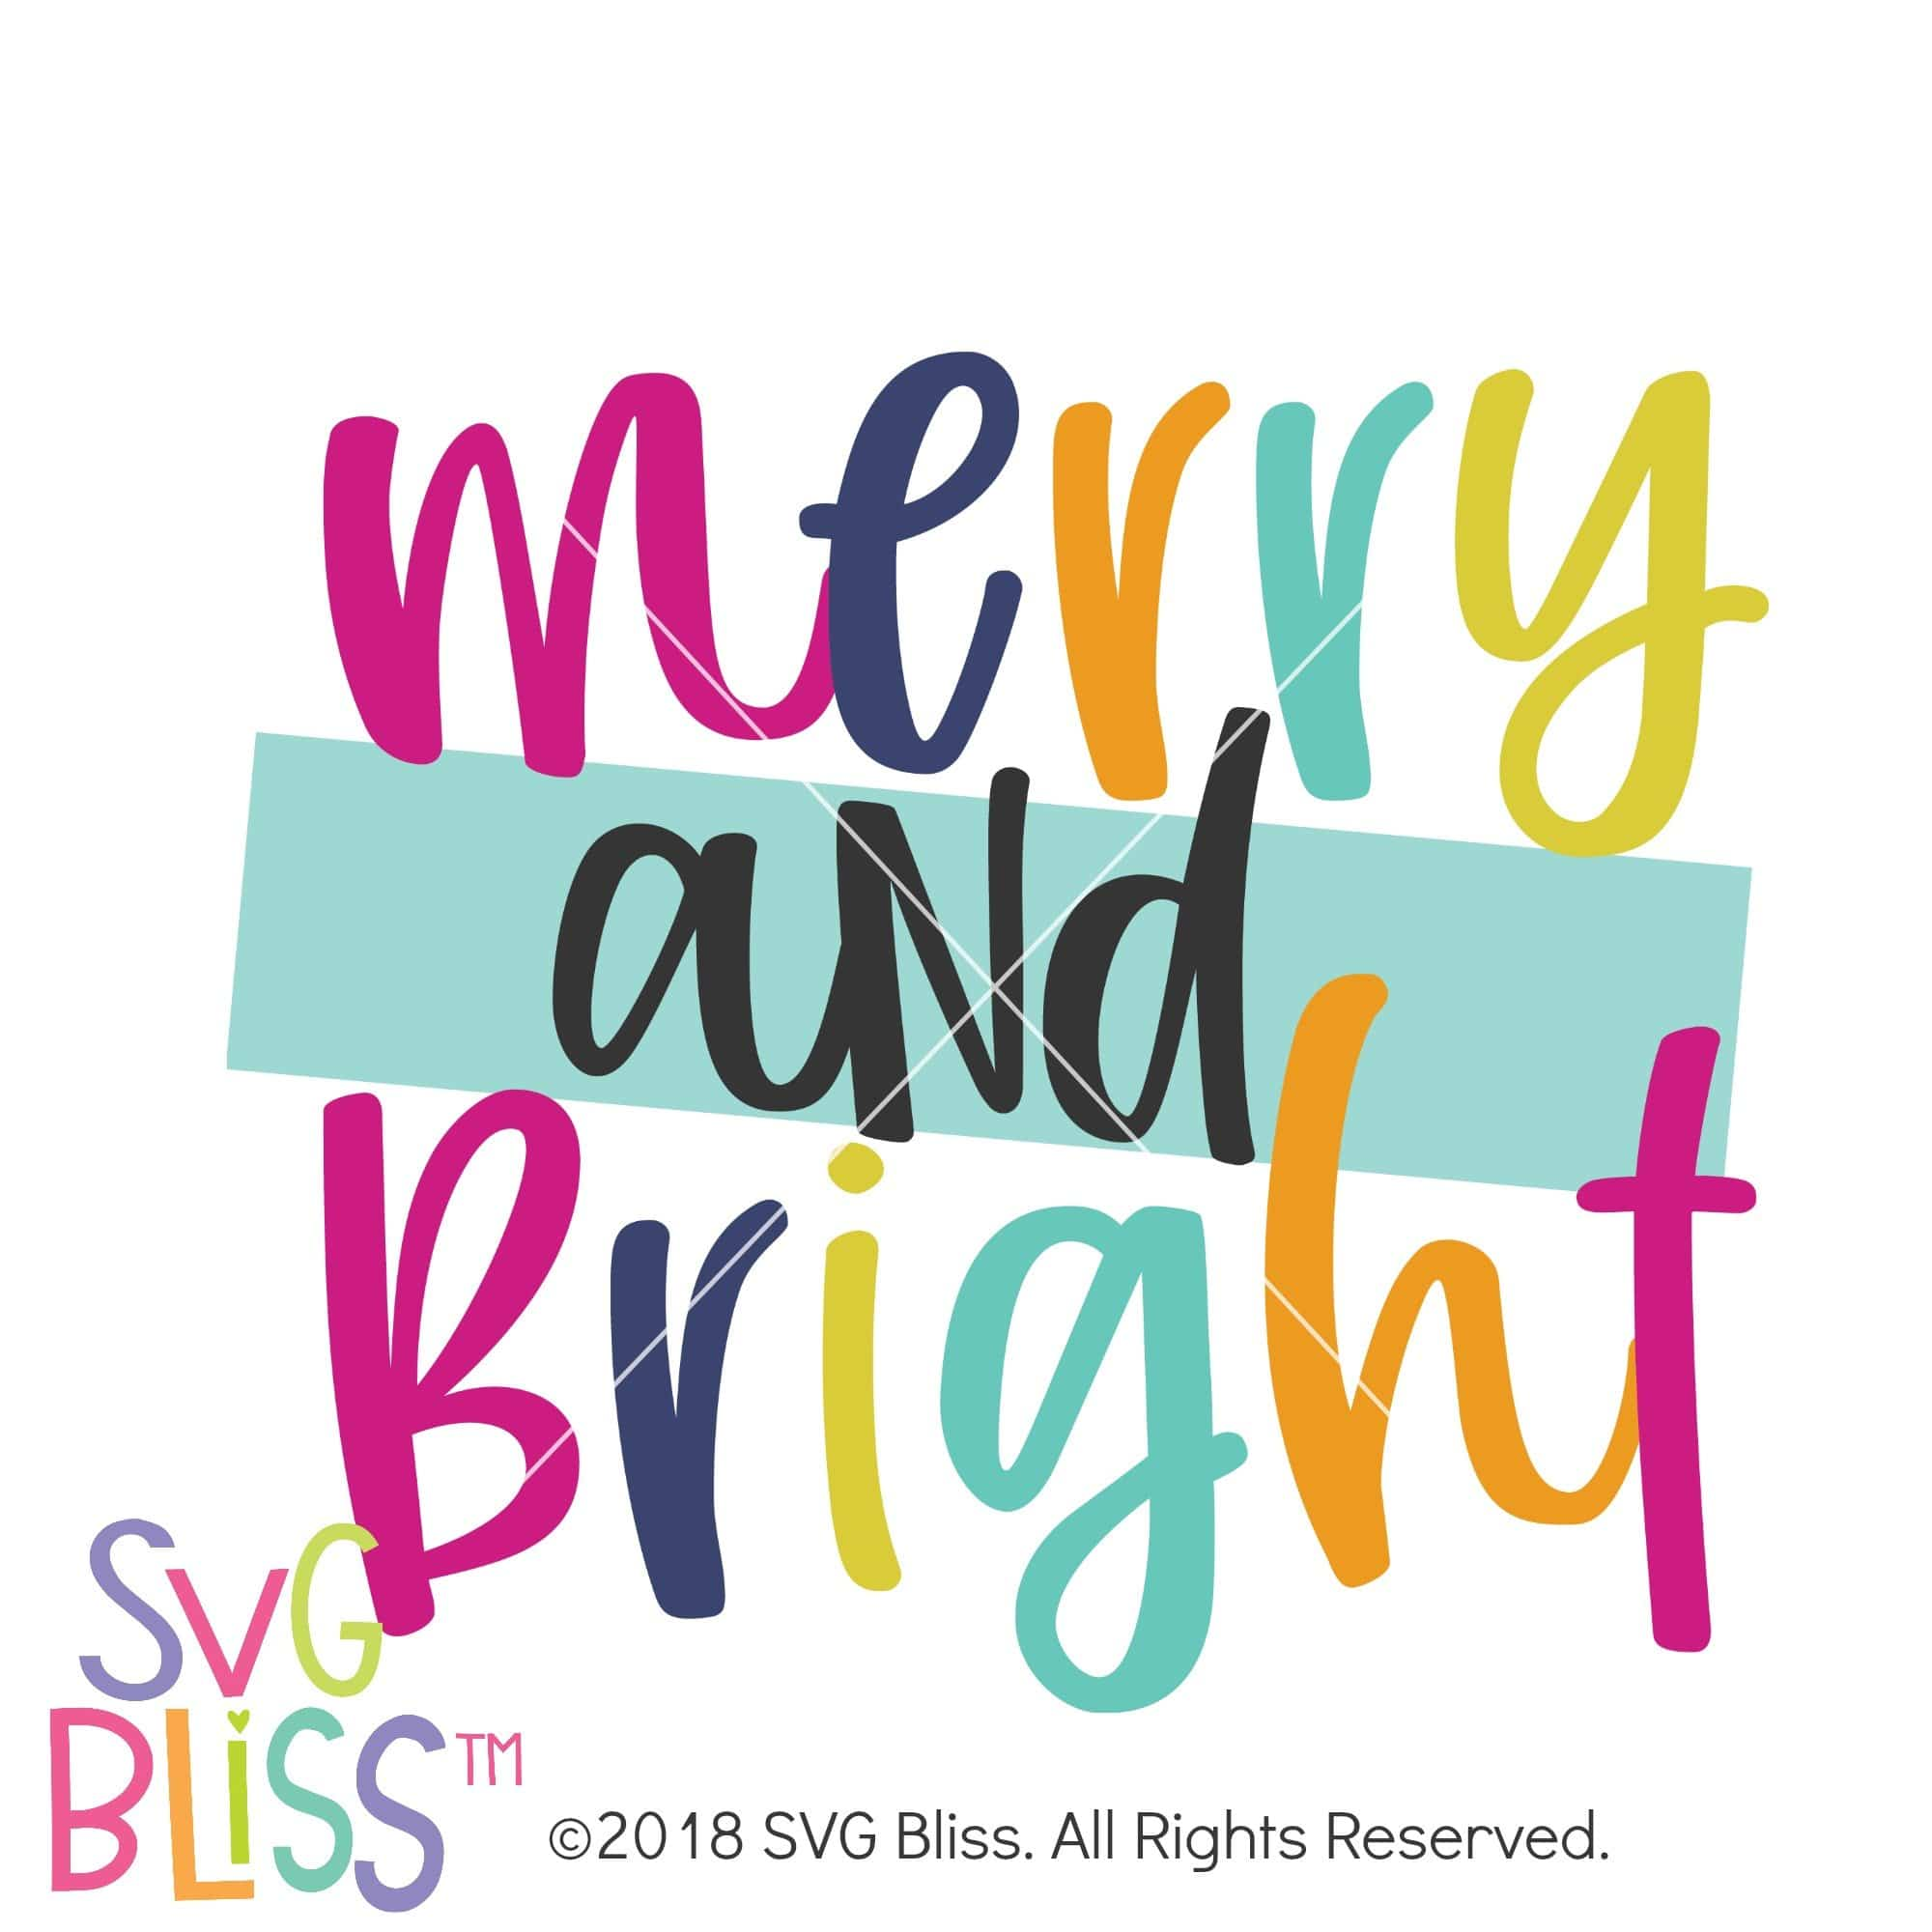 Svg Bliss Merry And Bright Svg Dxf Commercial Use Included